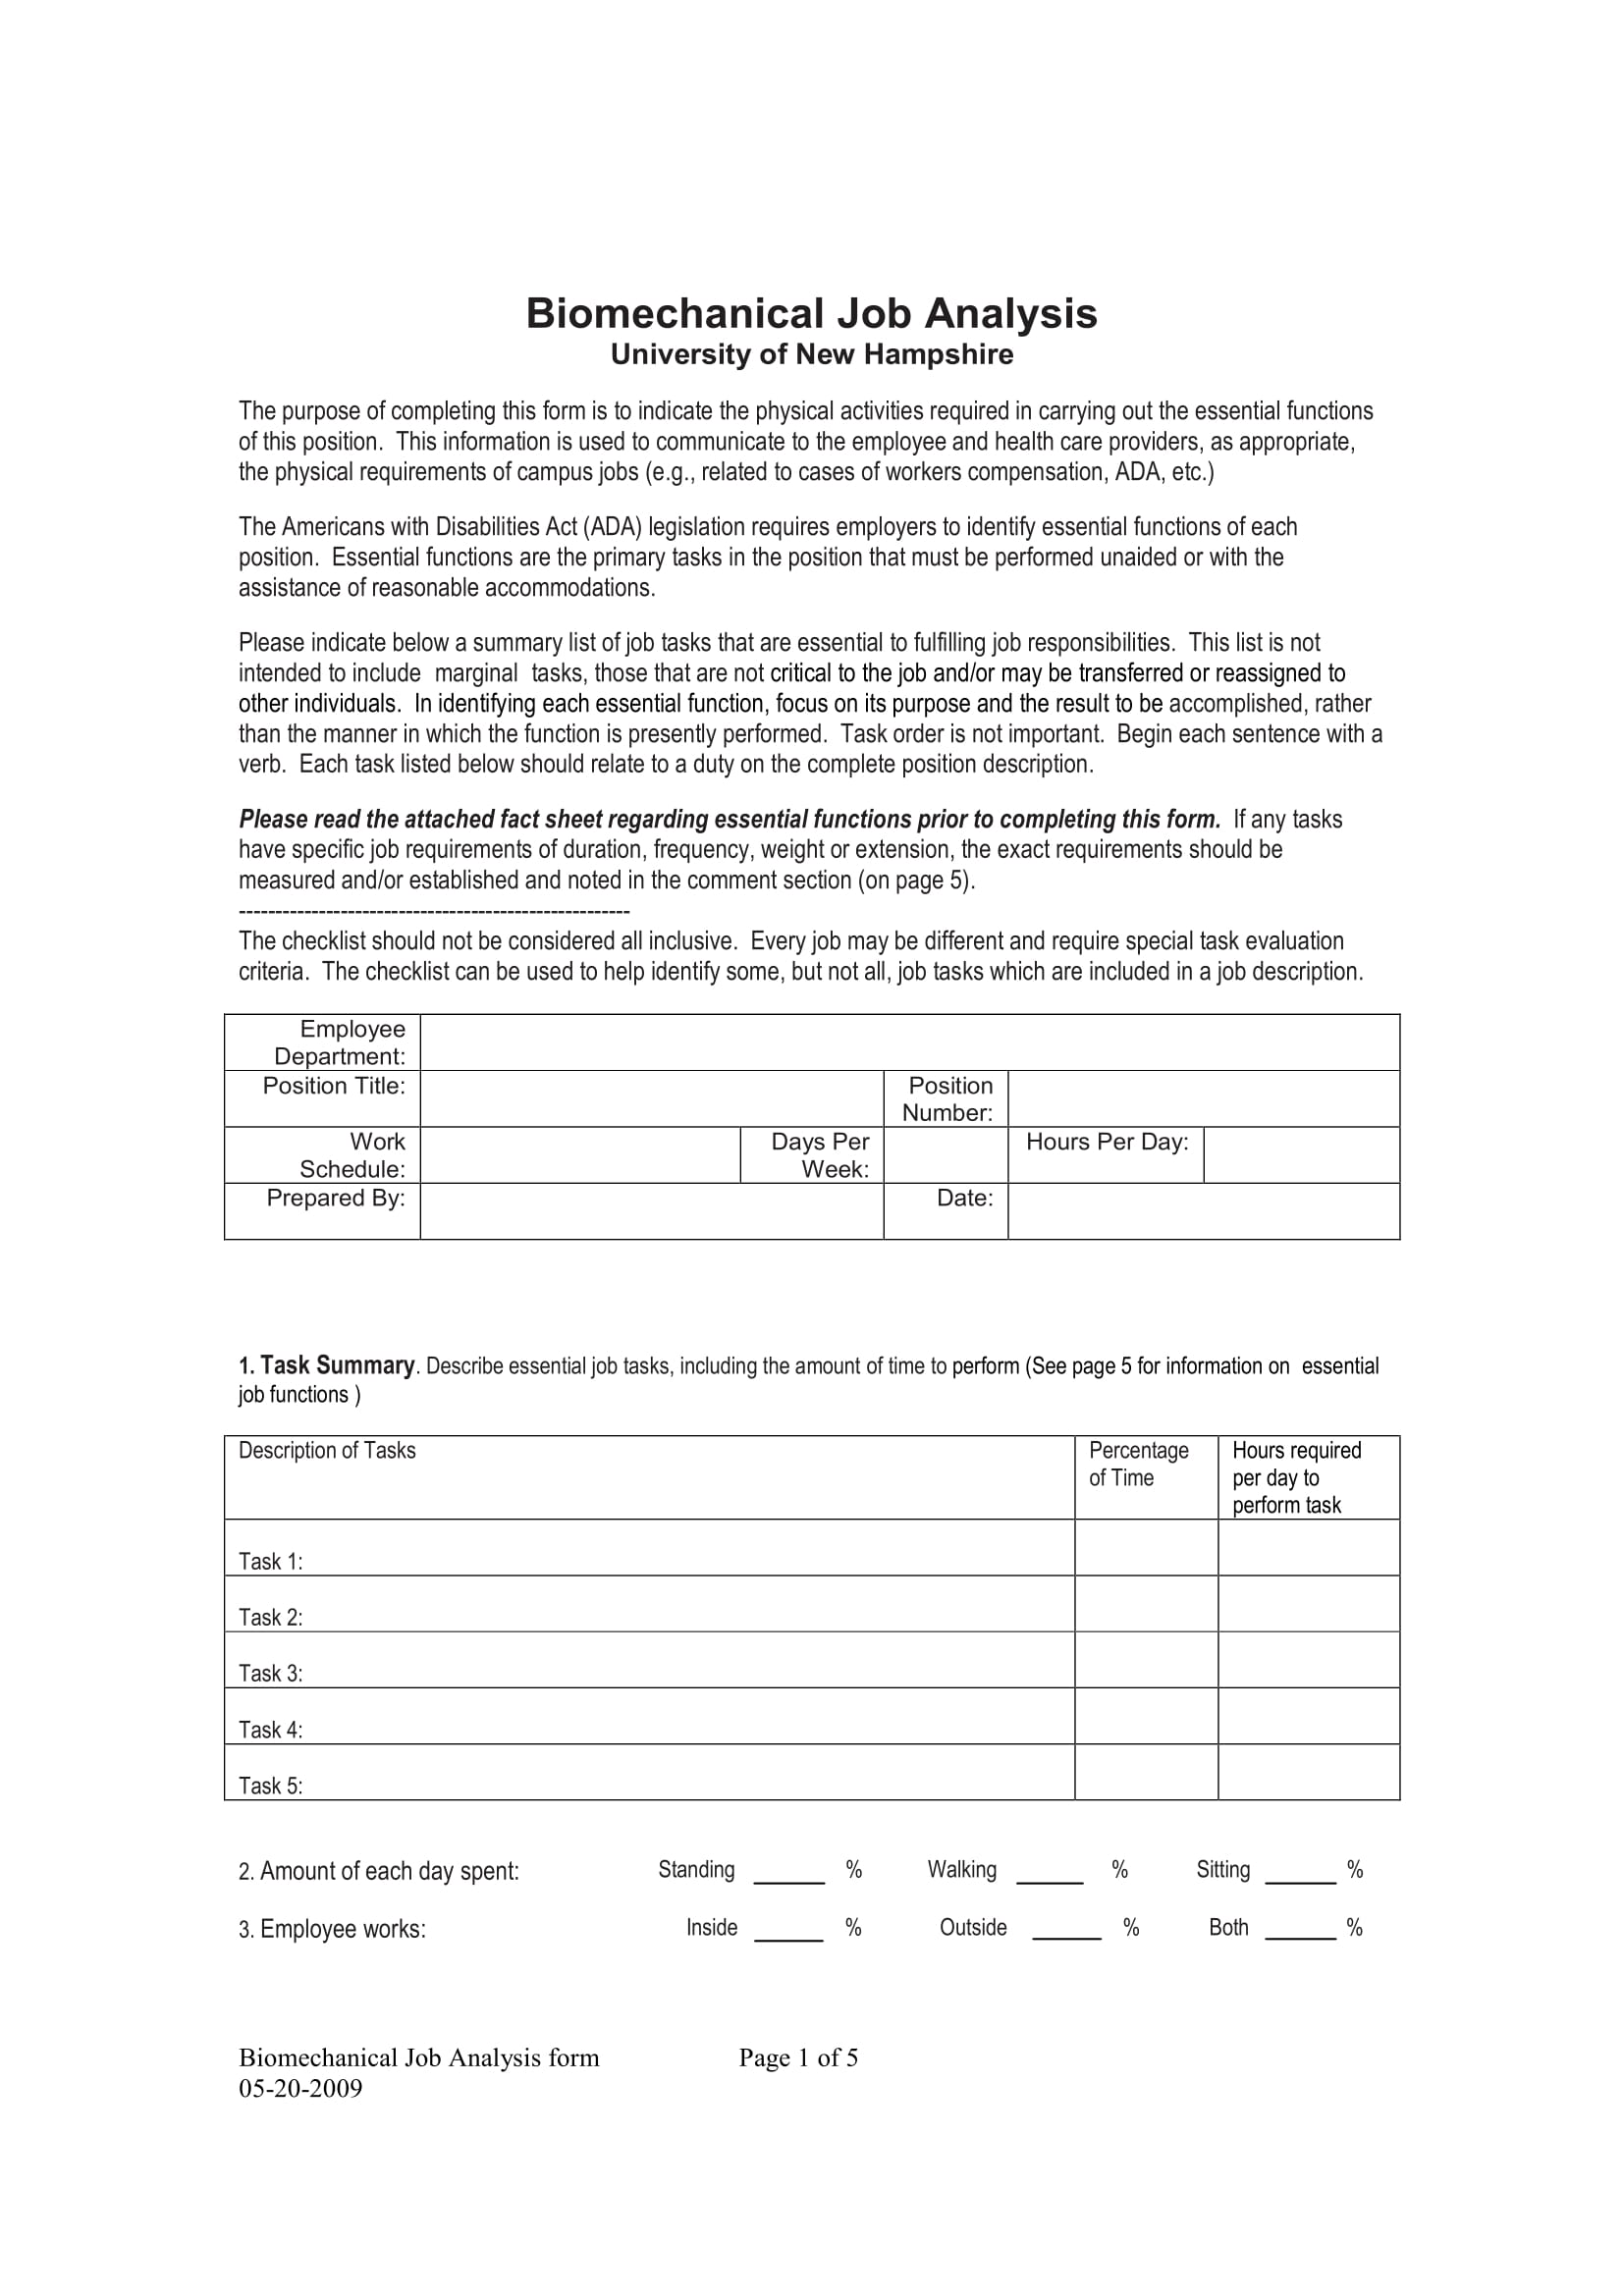 biomechanical job analysis form 1